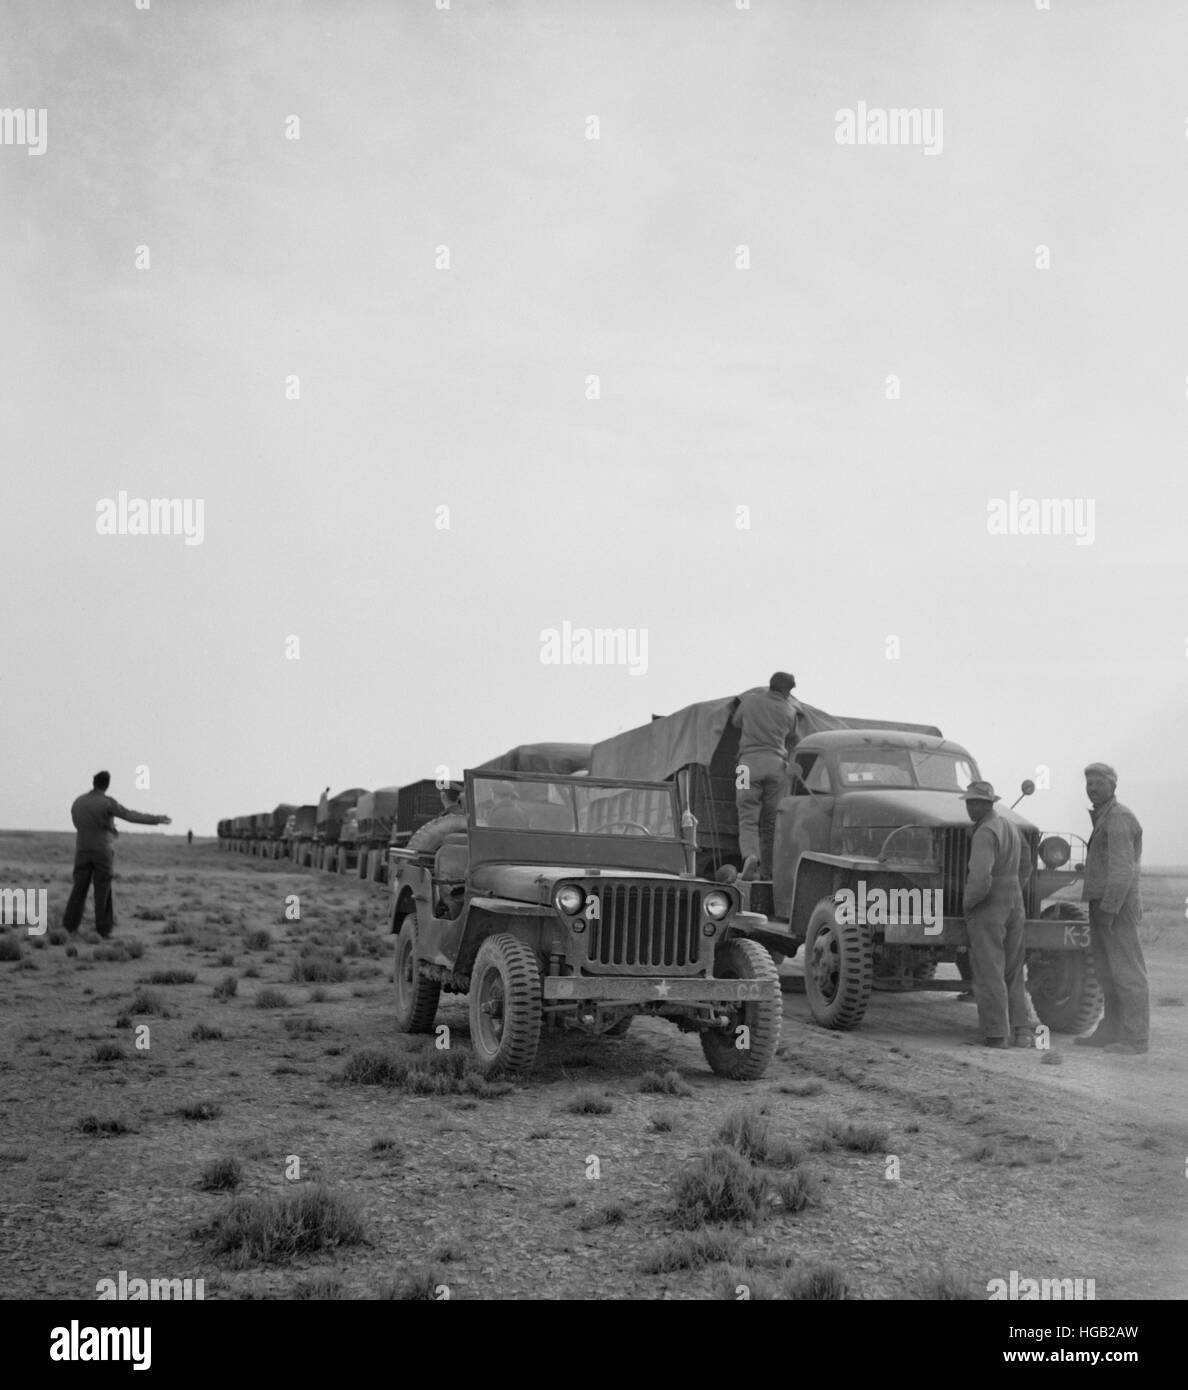 A U.S. Army truck convoy making a rest stop in the desert, 1943. - Stock Image